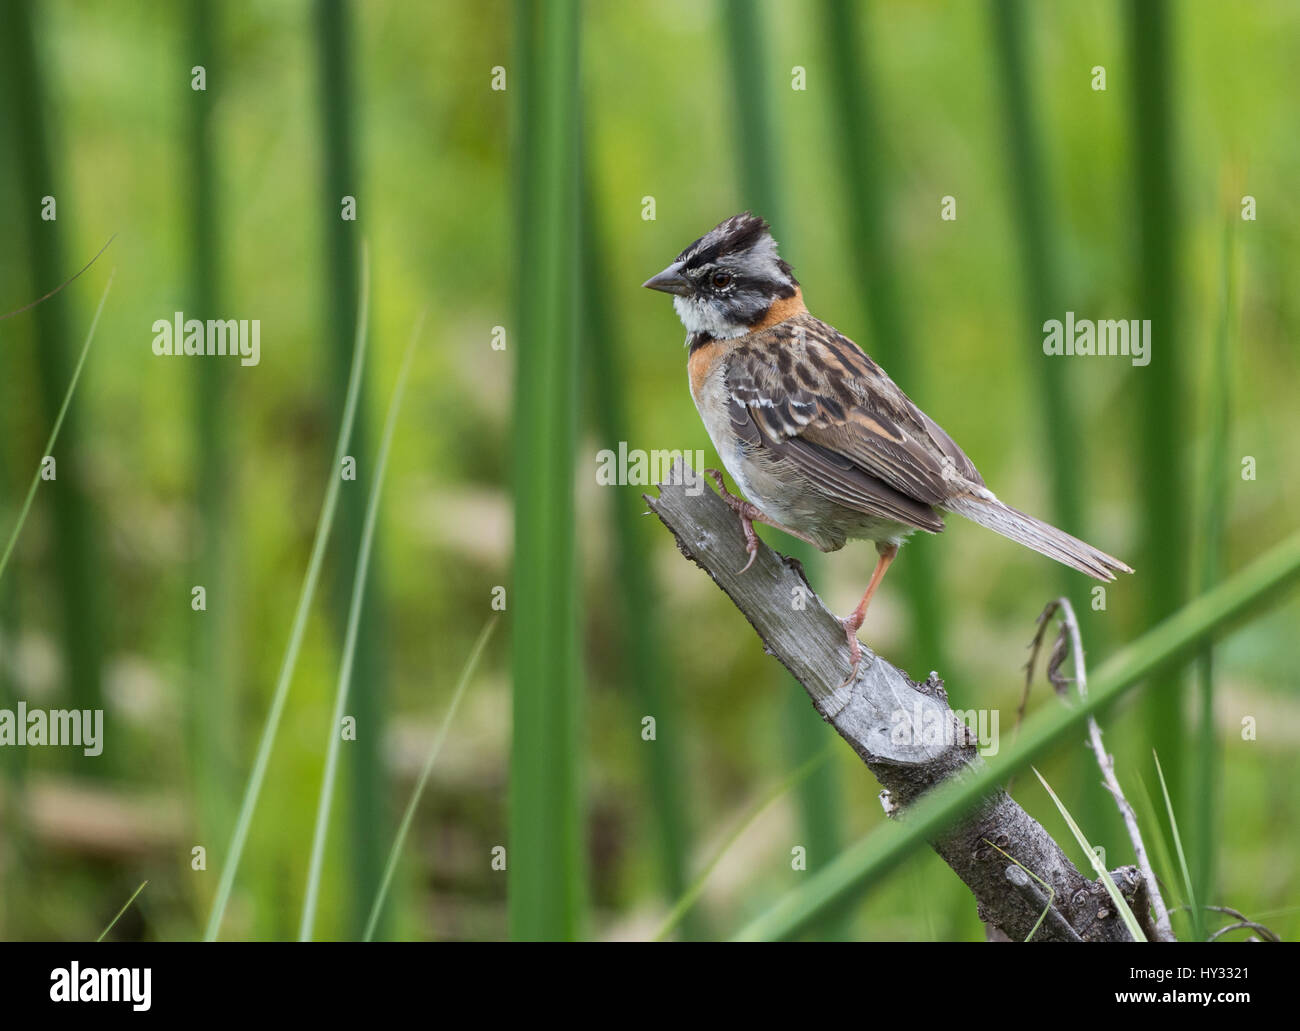 Rufous-collared Sparrow (Zonotrichia capensis) perched on a branch. Peru. Stock Photo